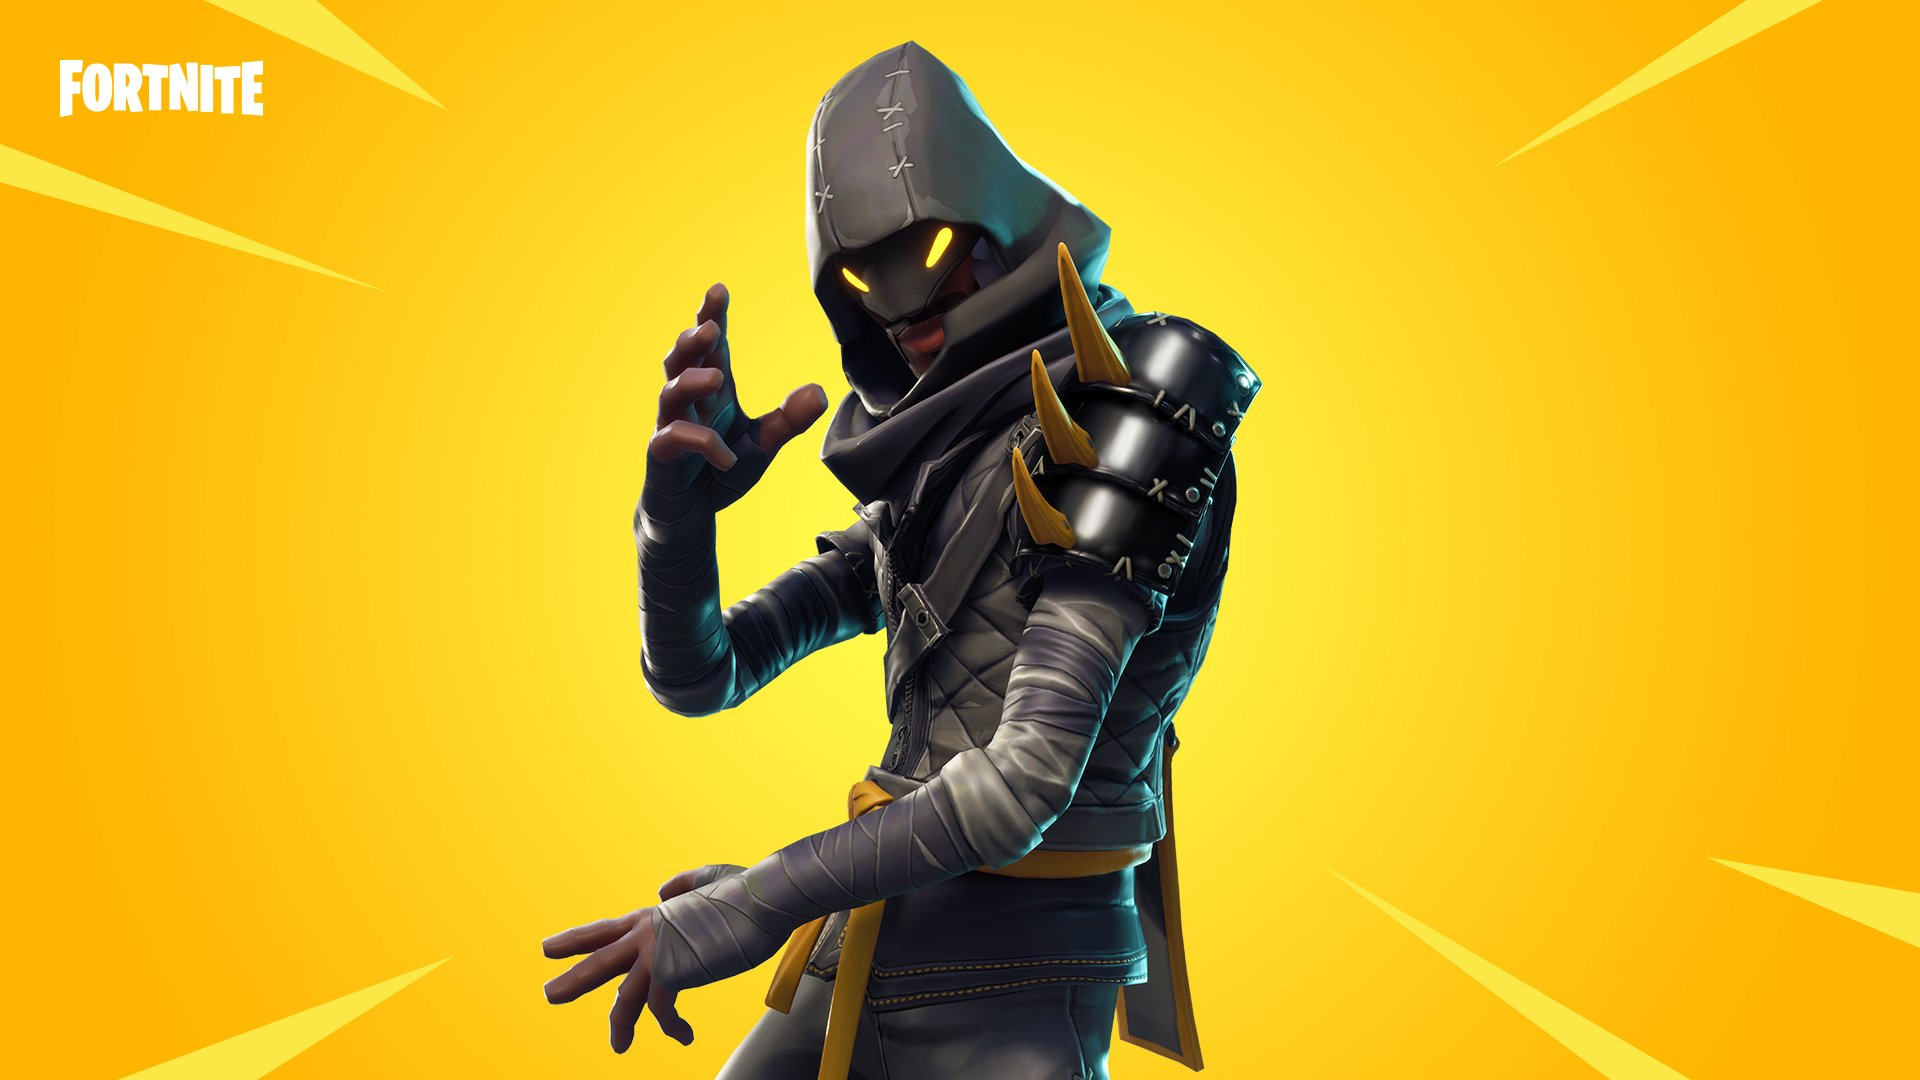 if you like to download this wallpaper please use this - ninja fortnite costume